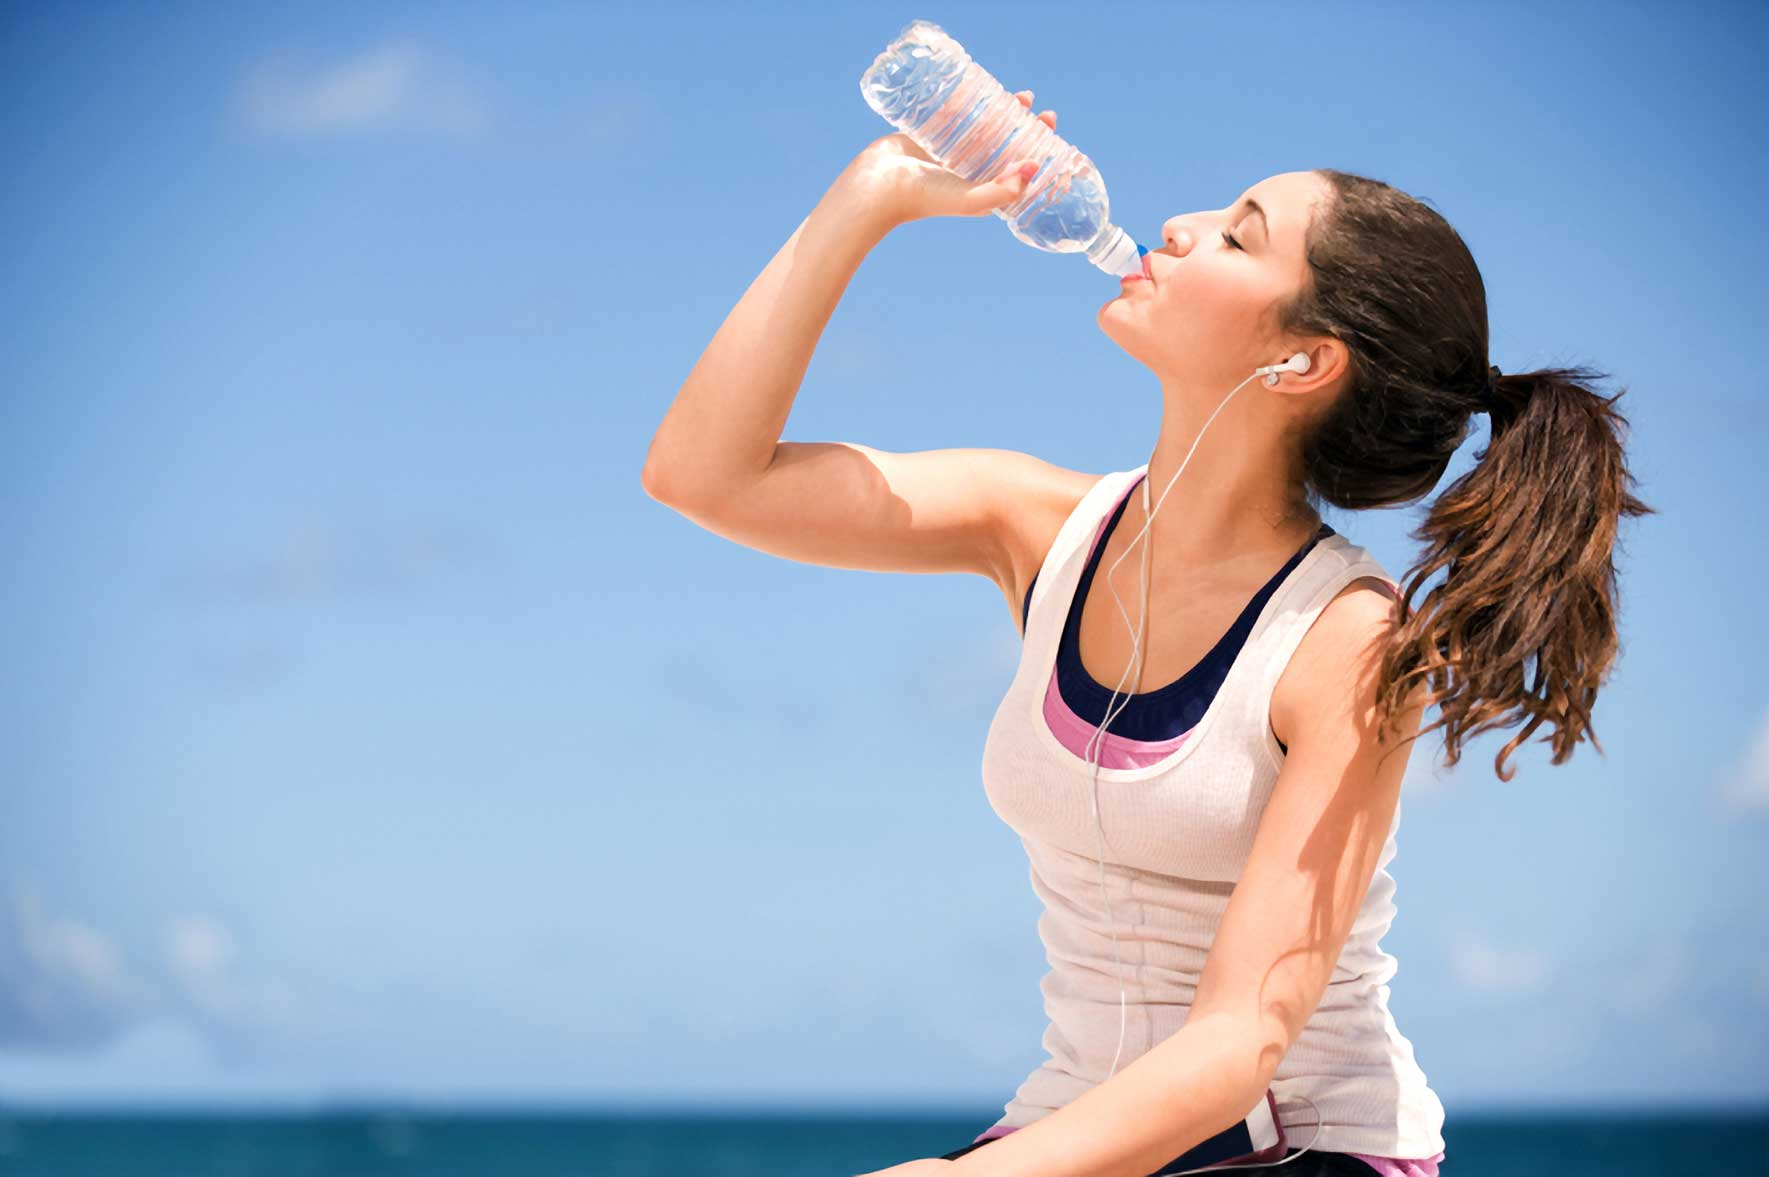 How to select the drinking water safe?